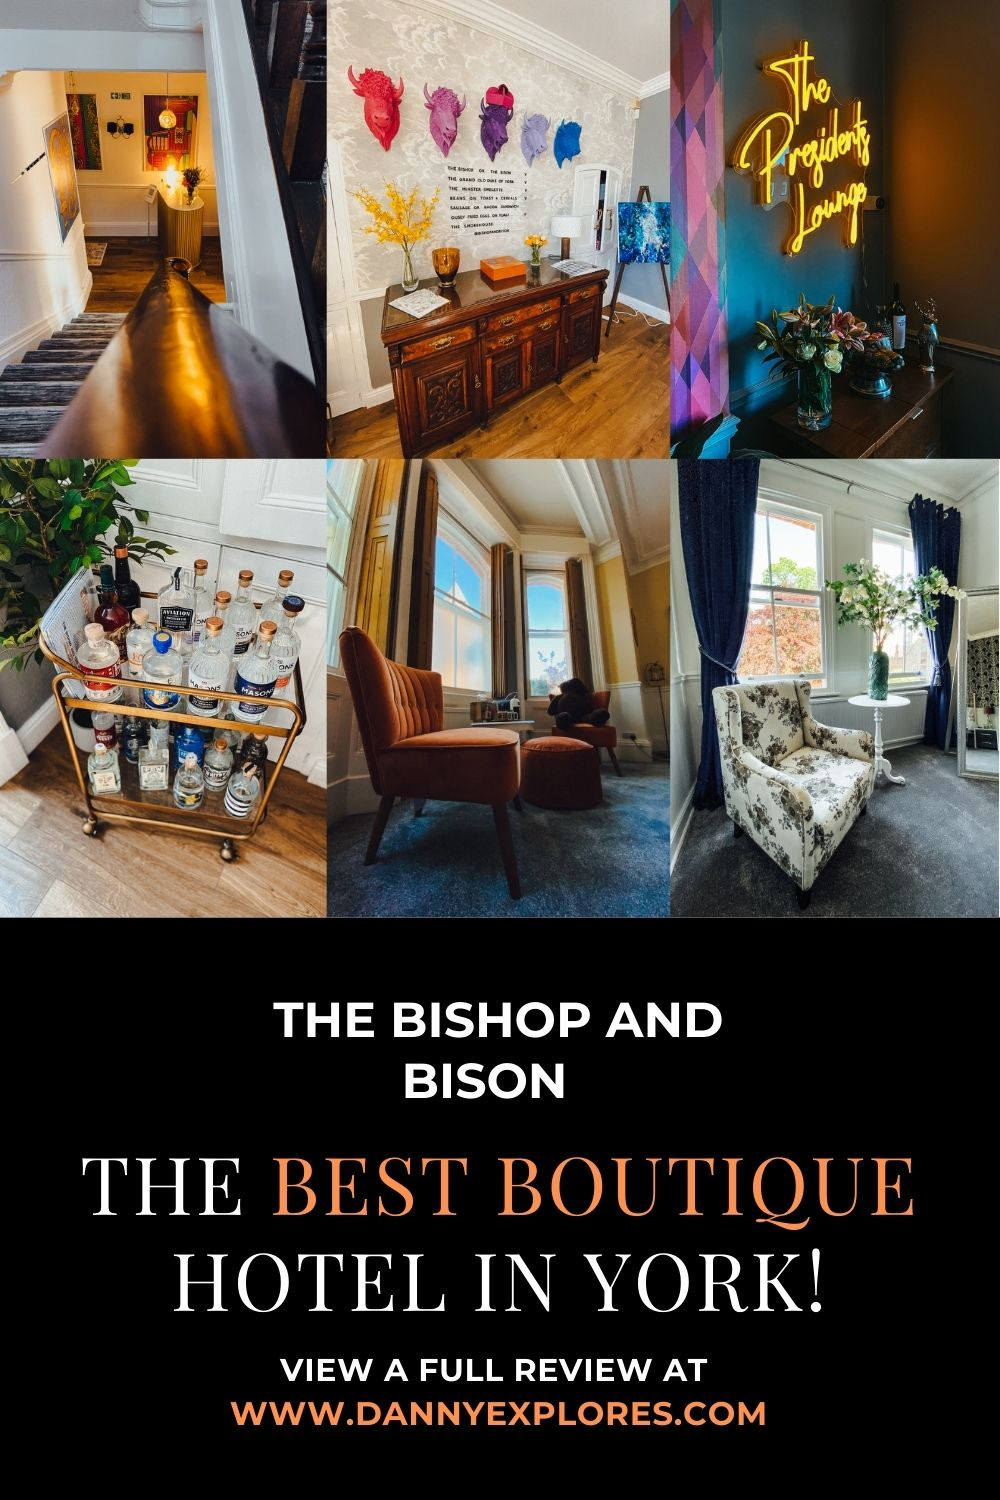 Pintrest sharing image for B&B showcasing areas of the hotel